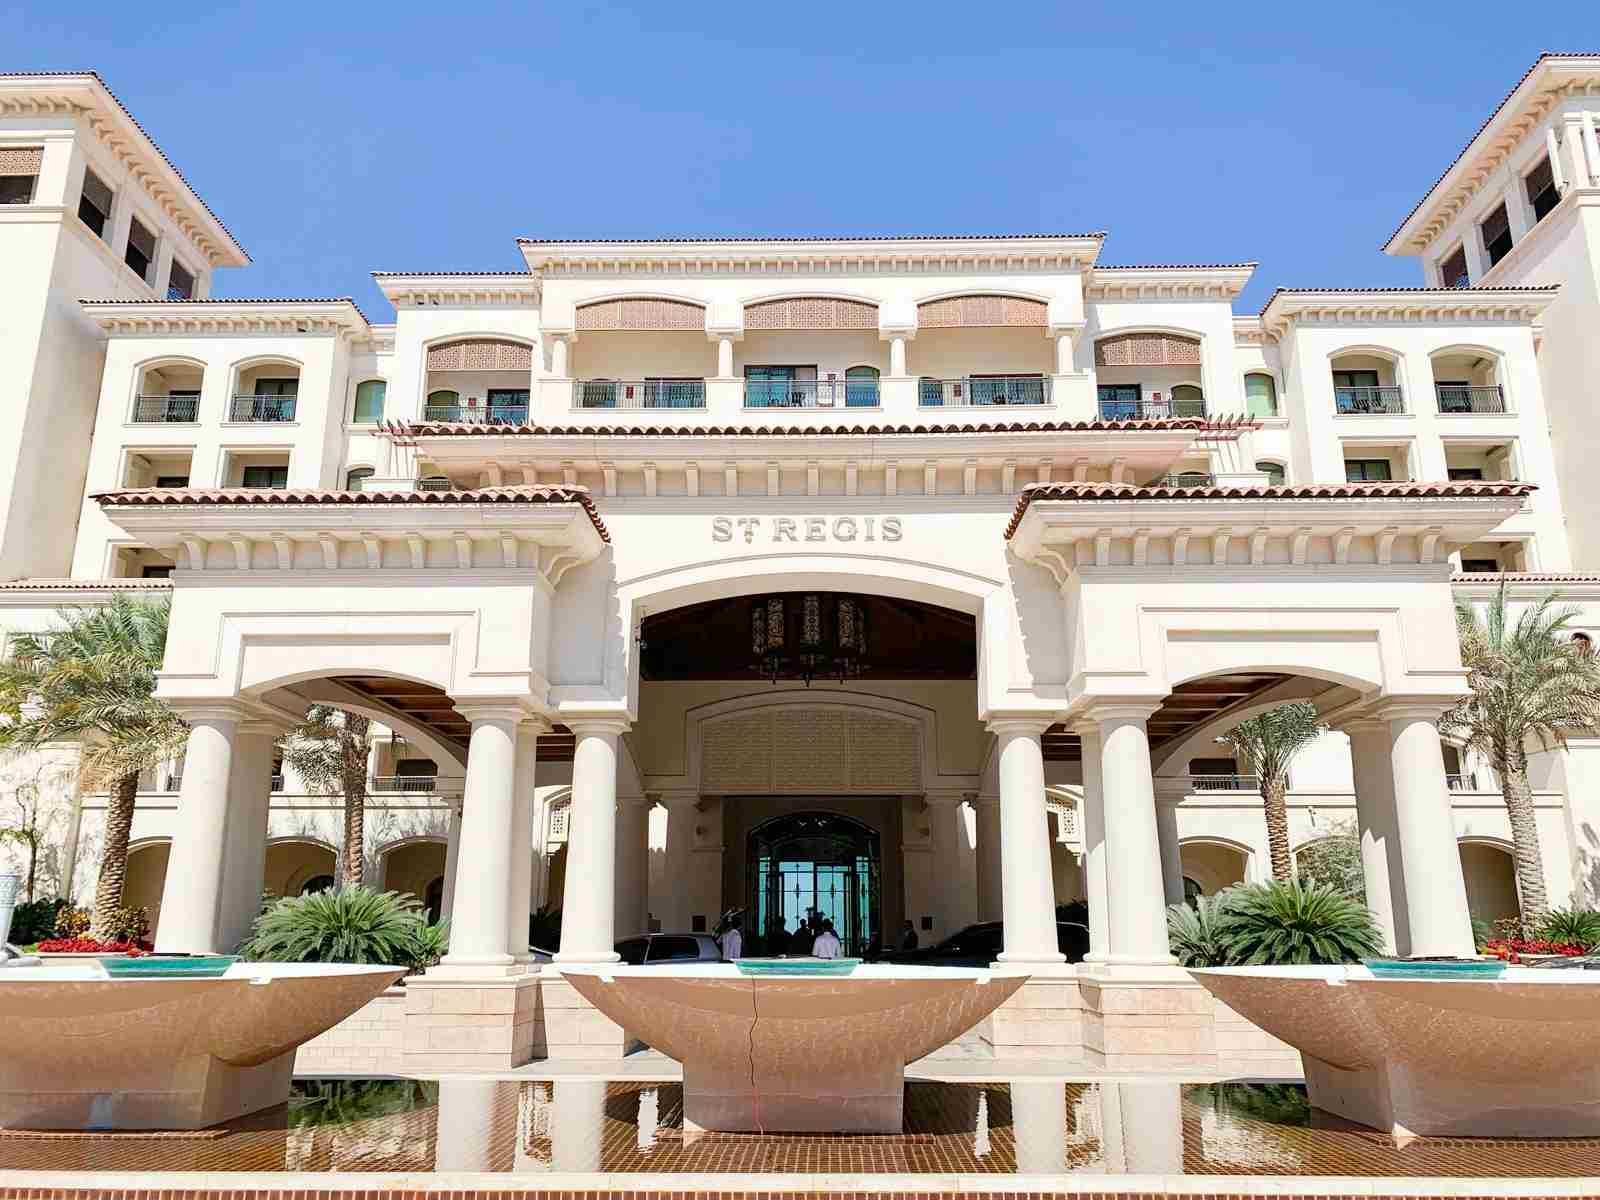 Enjoy the benefits of Marriott Gold elite status at properties like the St. Regis Saadiyat Island Abu Dhabi